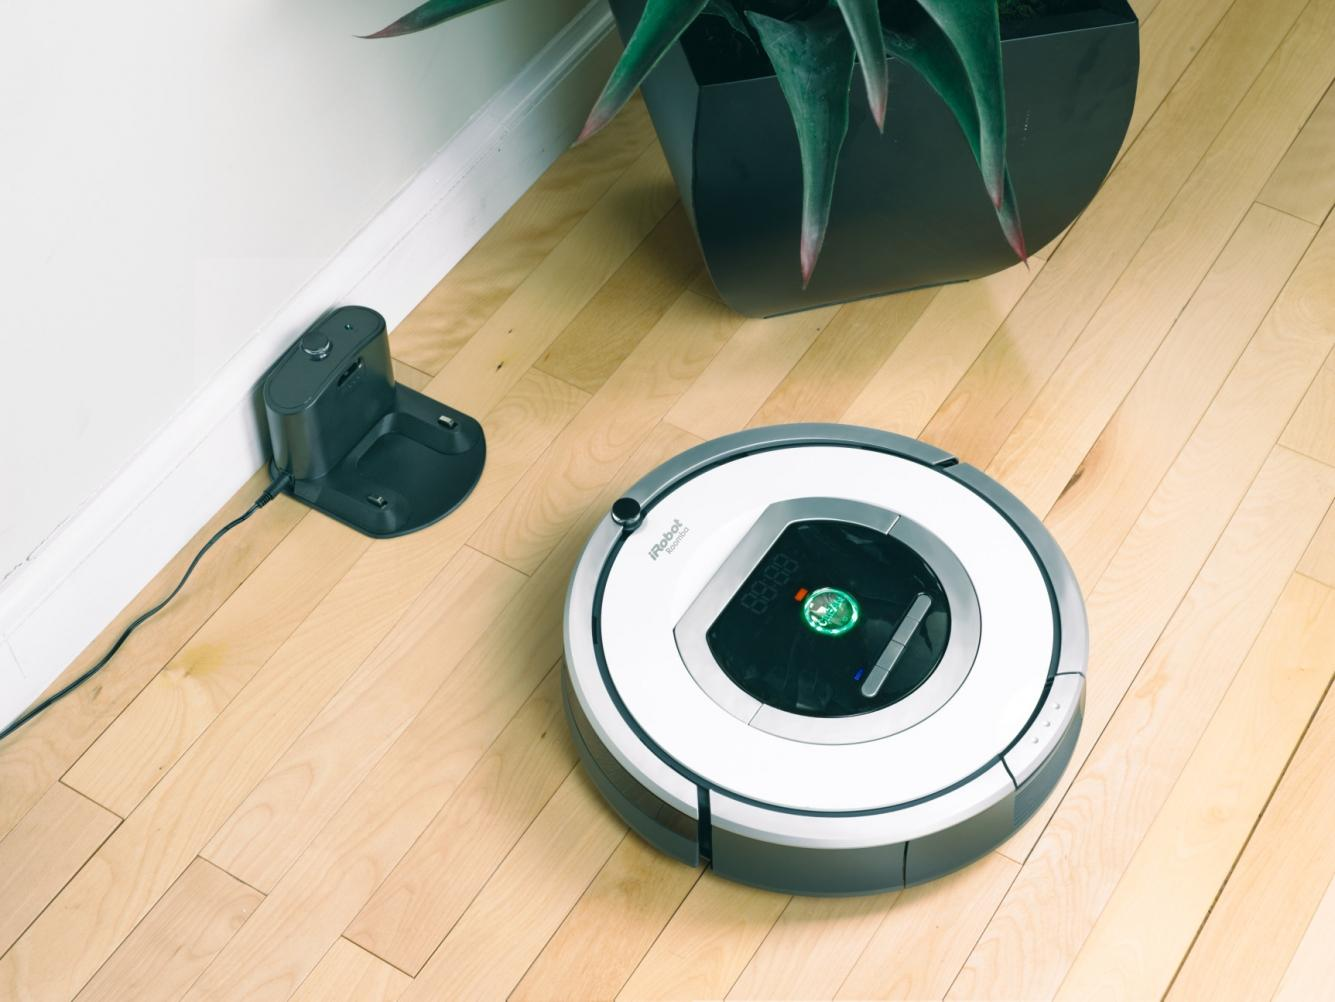 test du robot aspirateur irobot roomba 776p le blog de flexyflow. Black Bedroom Furniture Sets. Home Design Ideas